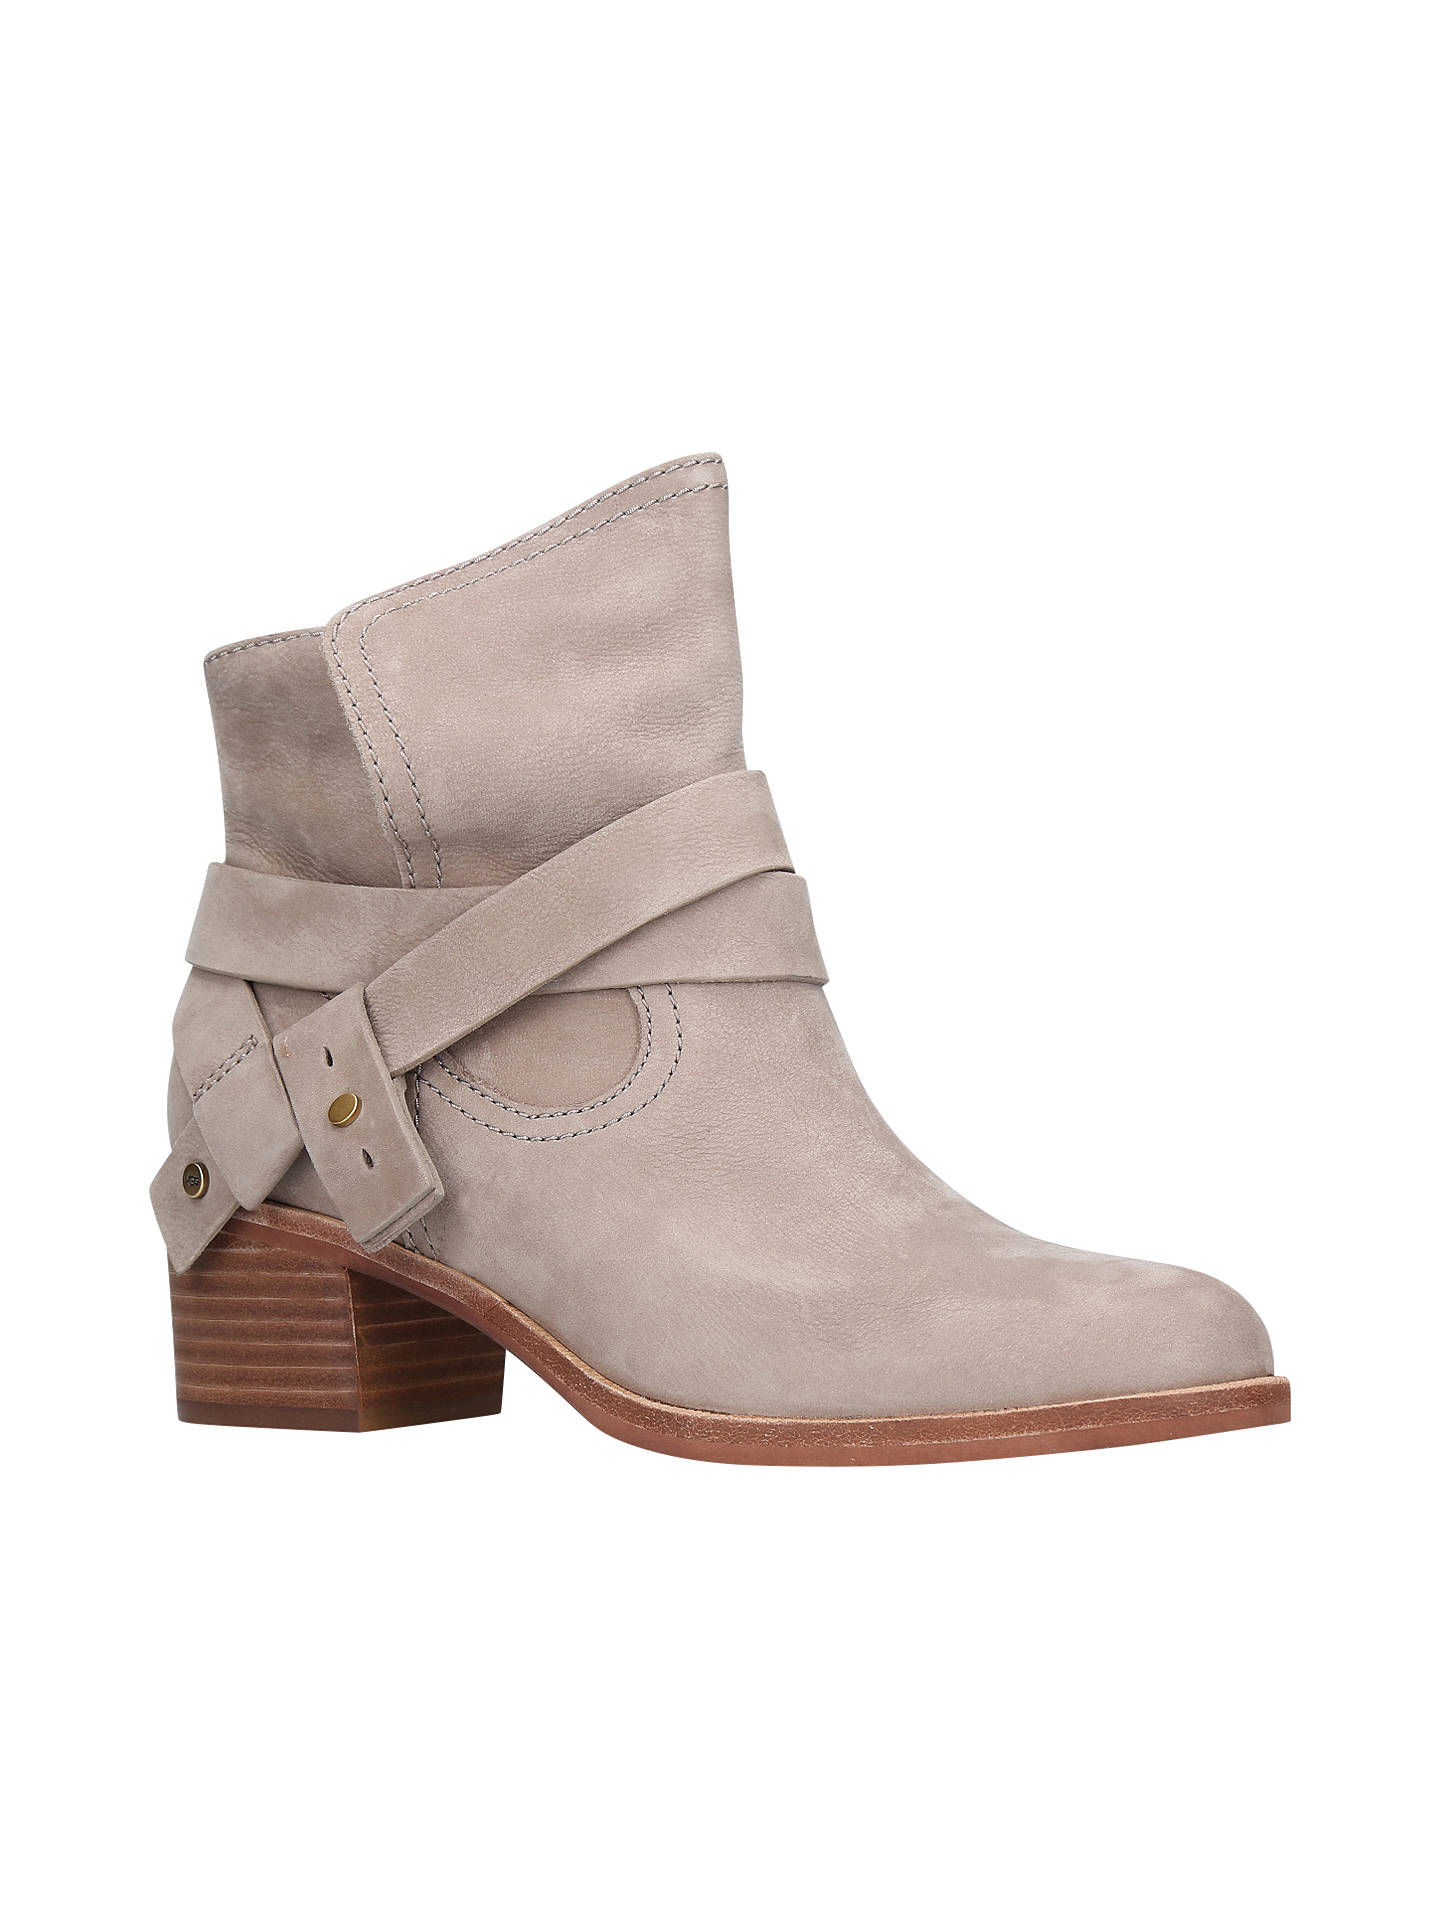 17b652e6741219 Buy UGG Elora Nubuck Ankle Boots, Taupe, 6 Online at johnlewis.com ...